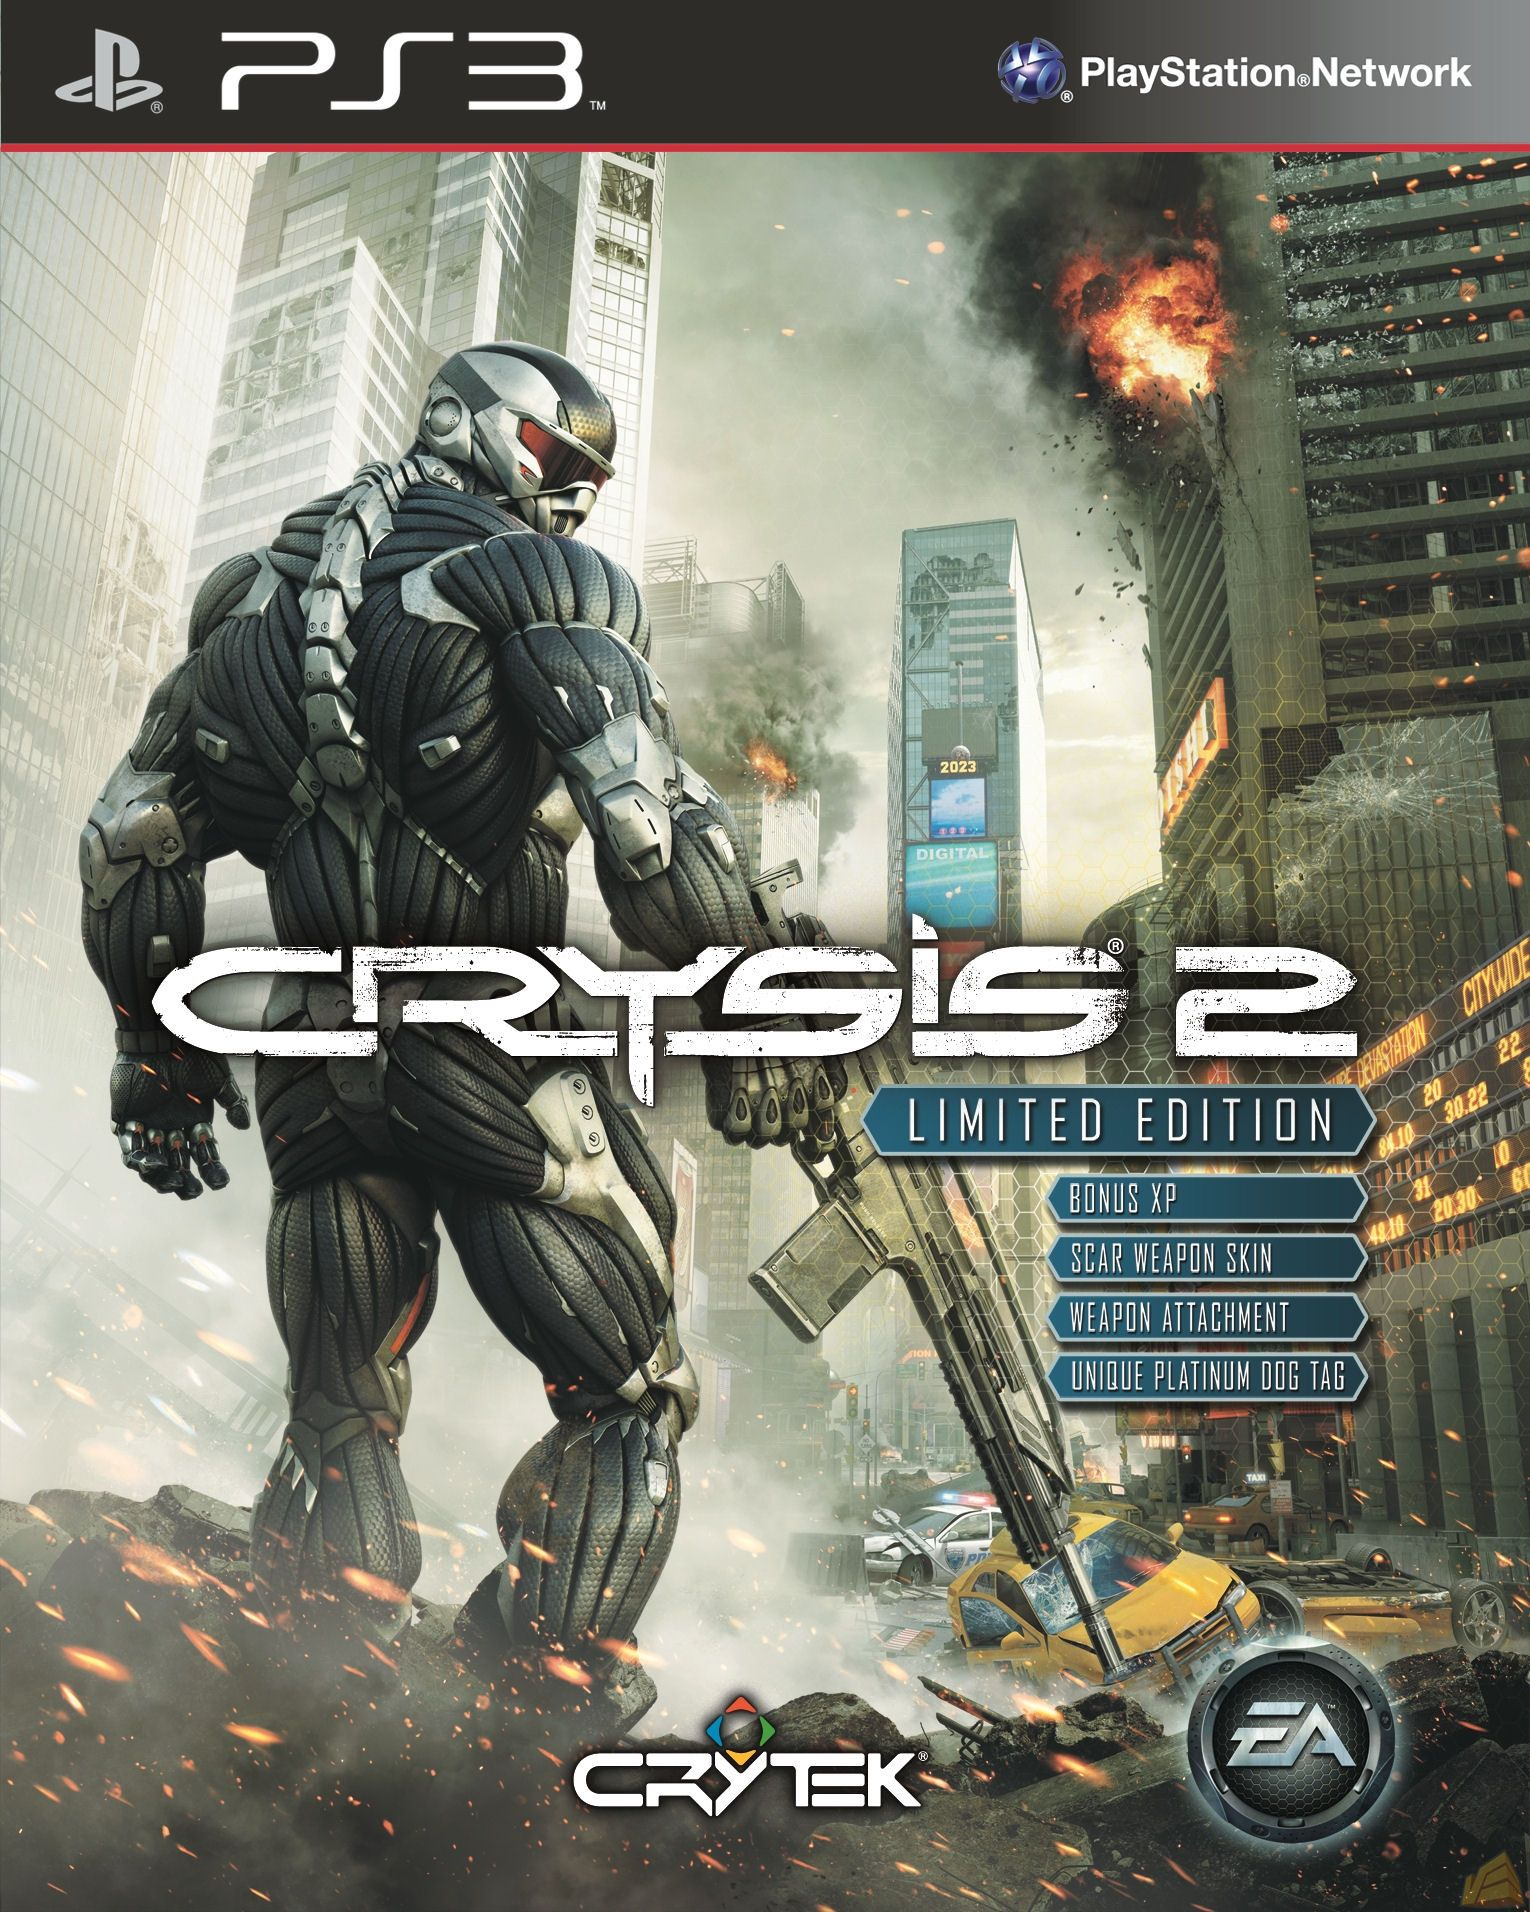 crysis 2 walkthrough video guide pc ps3 xbox 360 rh videogamesblogger com  Walkthrough Guide Ideas